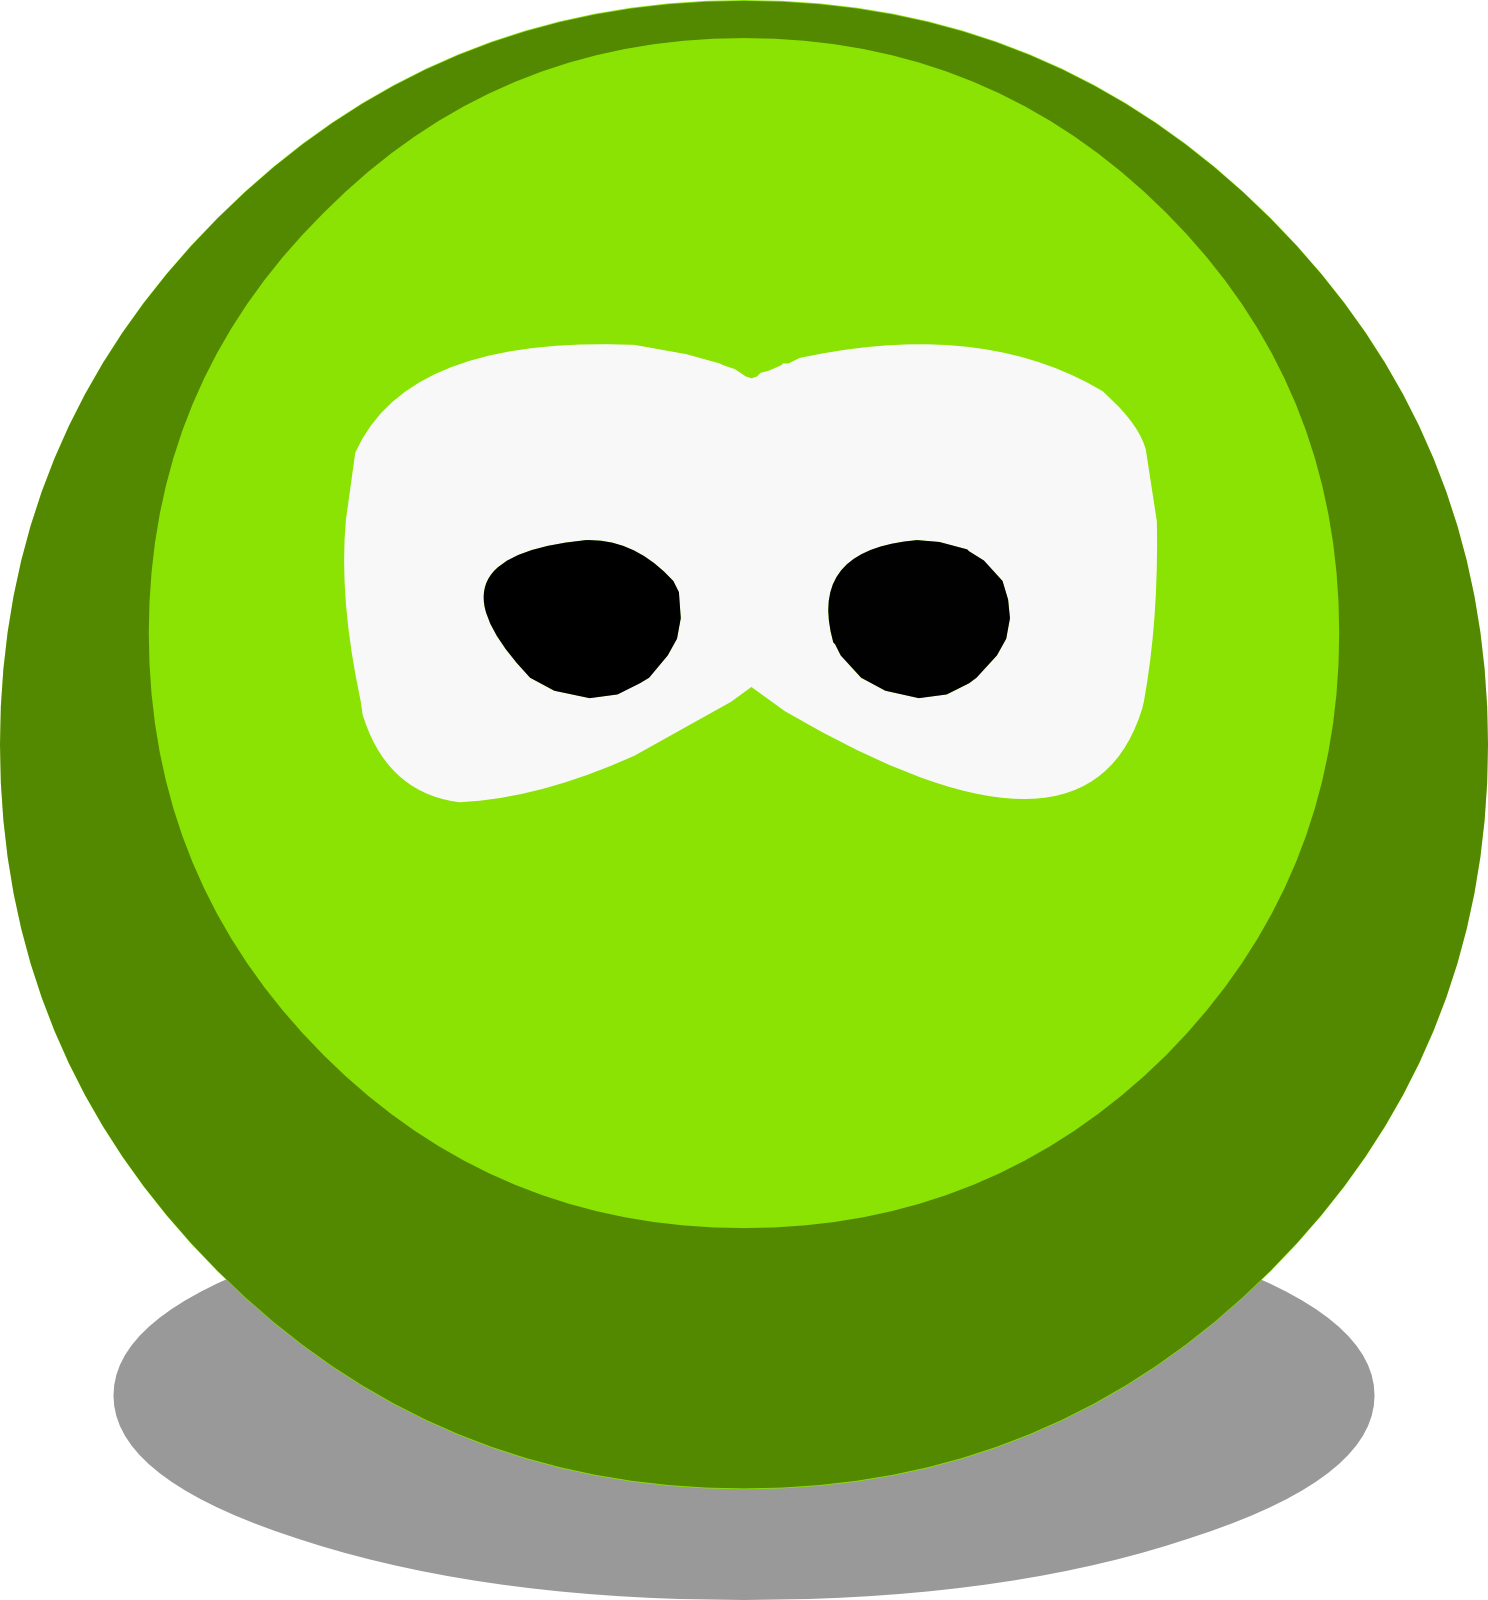 image lime green color png club penguin wiki fandom powered by